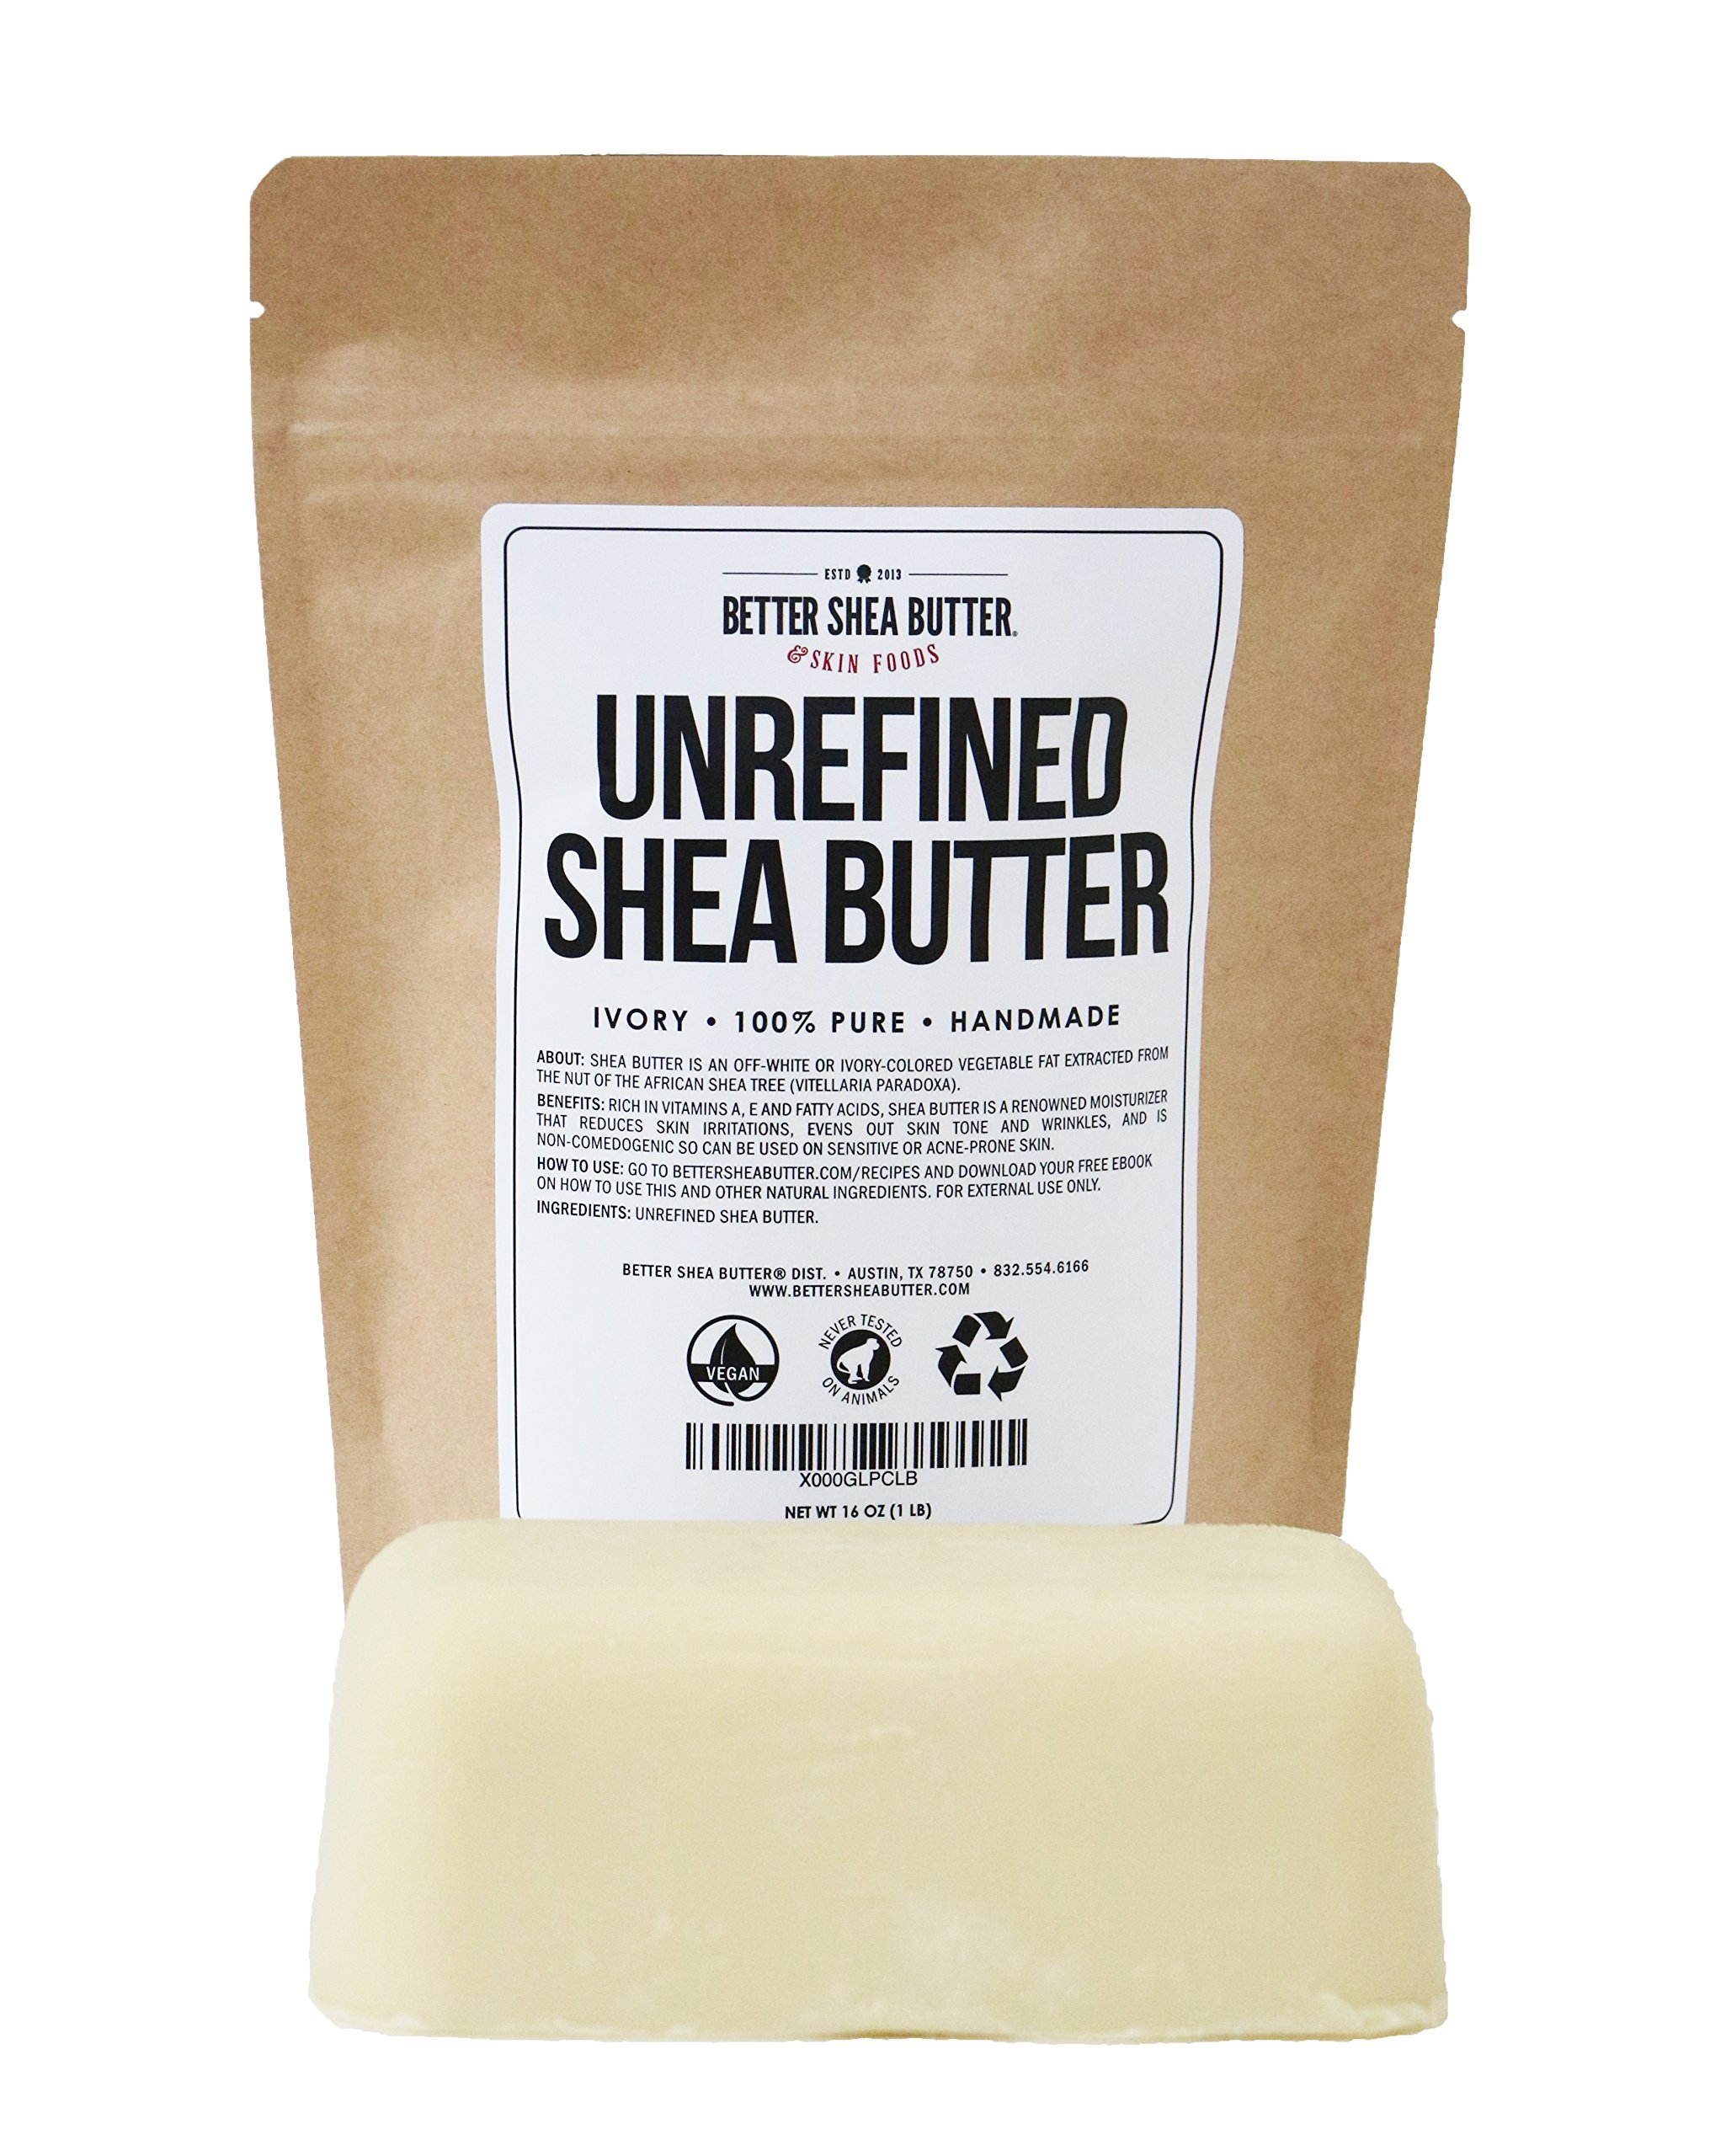 Unrefined Shea Butter by Better Shea Butter - Ivory - 1 lb